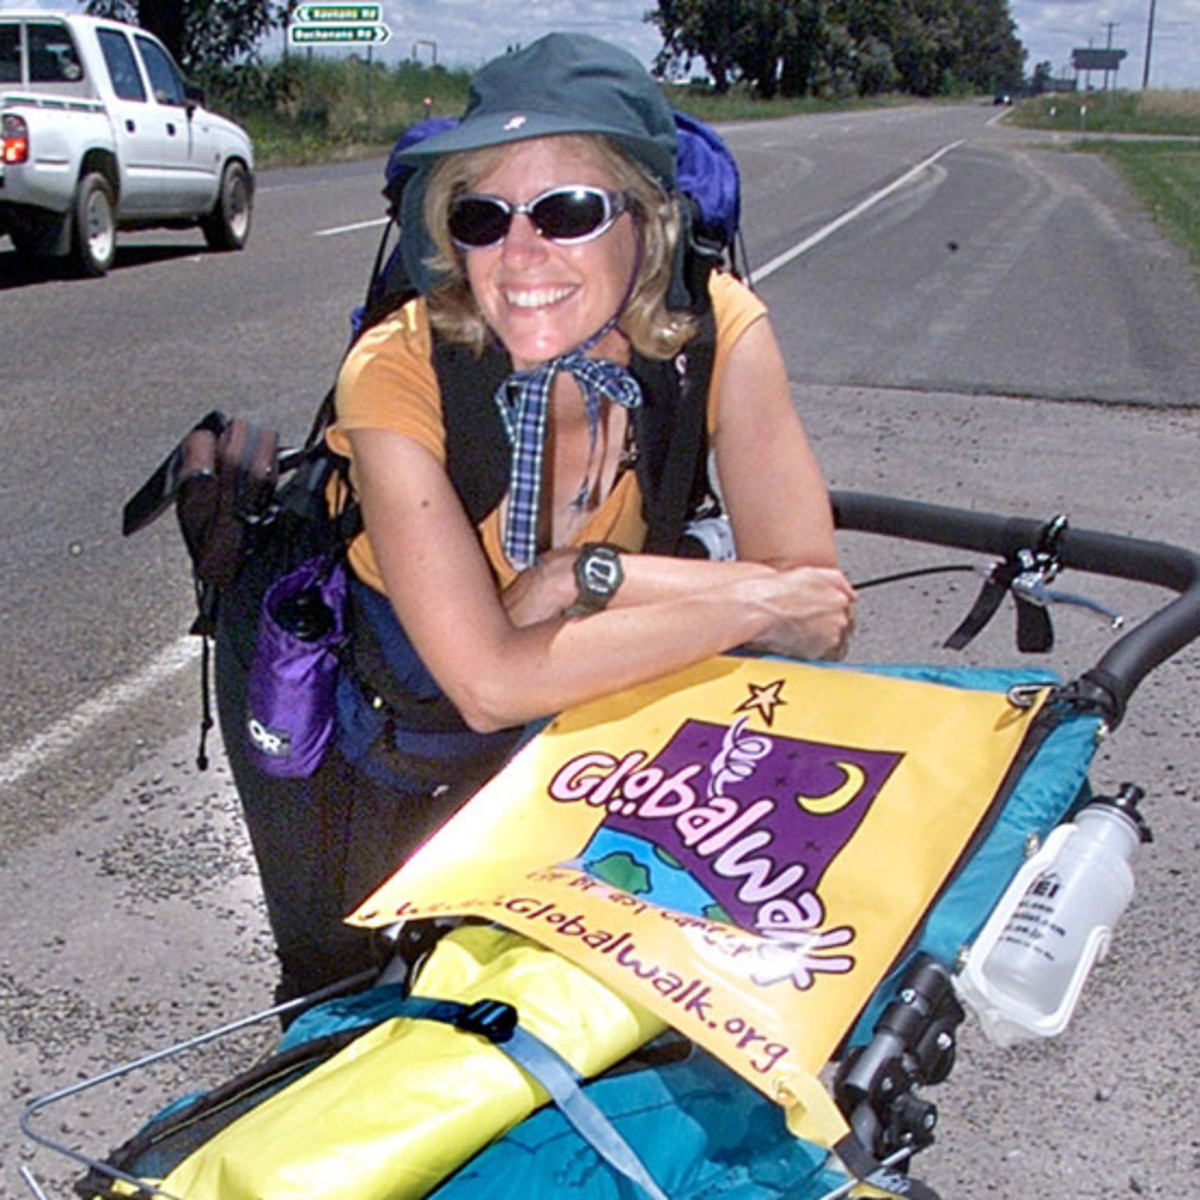 Polly Leftosky with altered running stroller